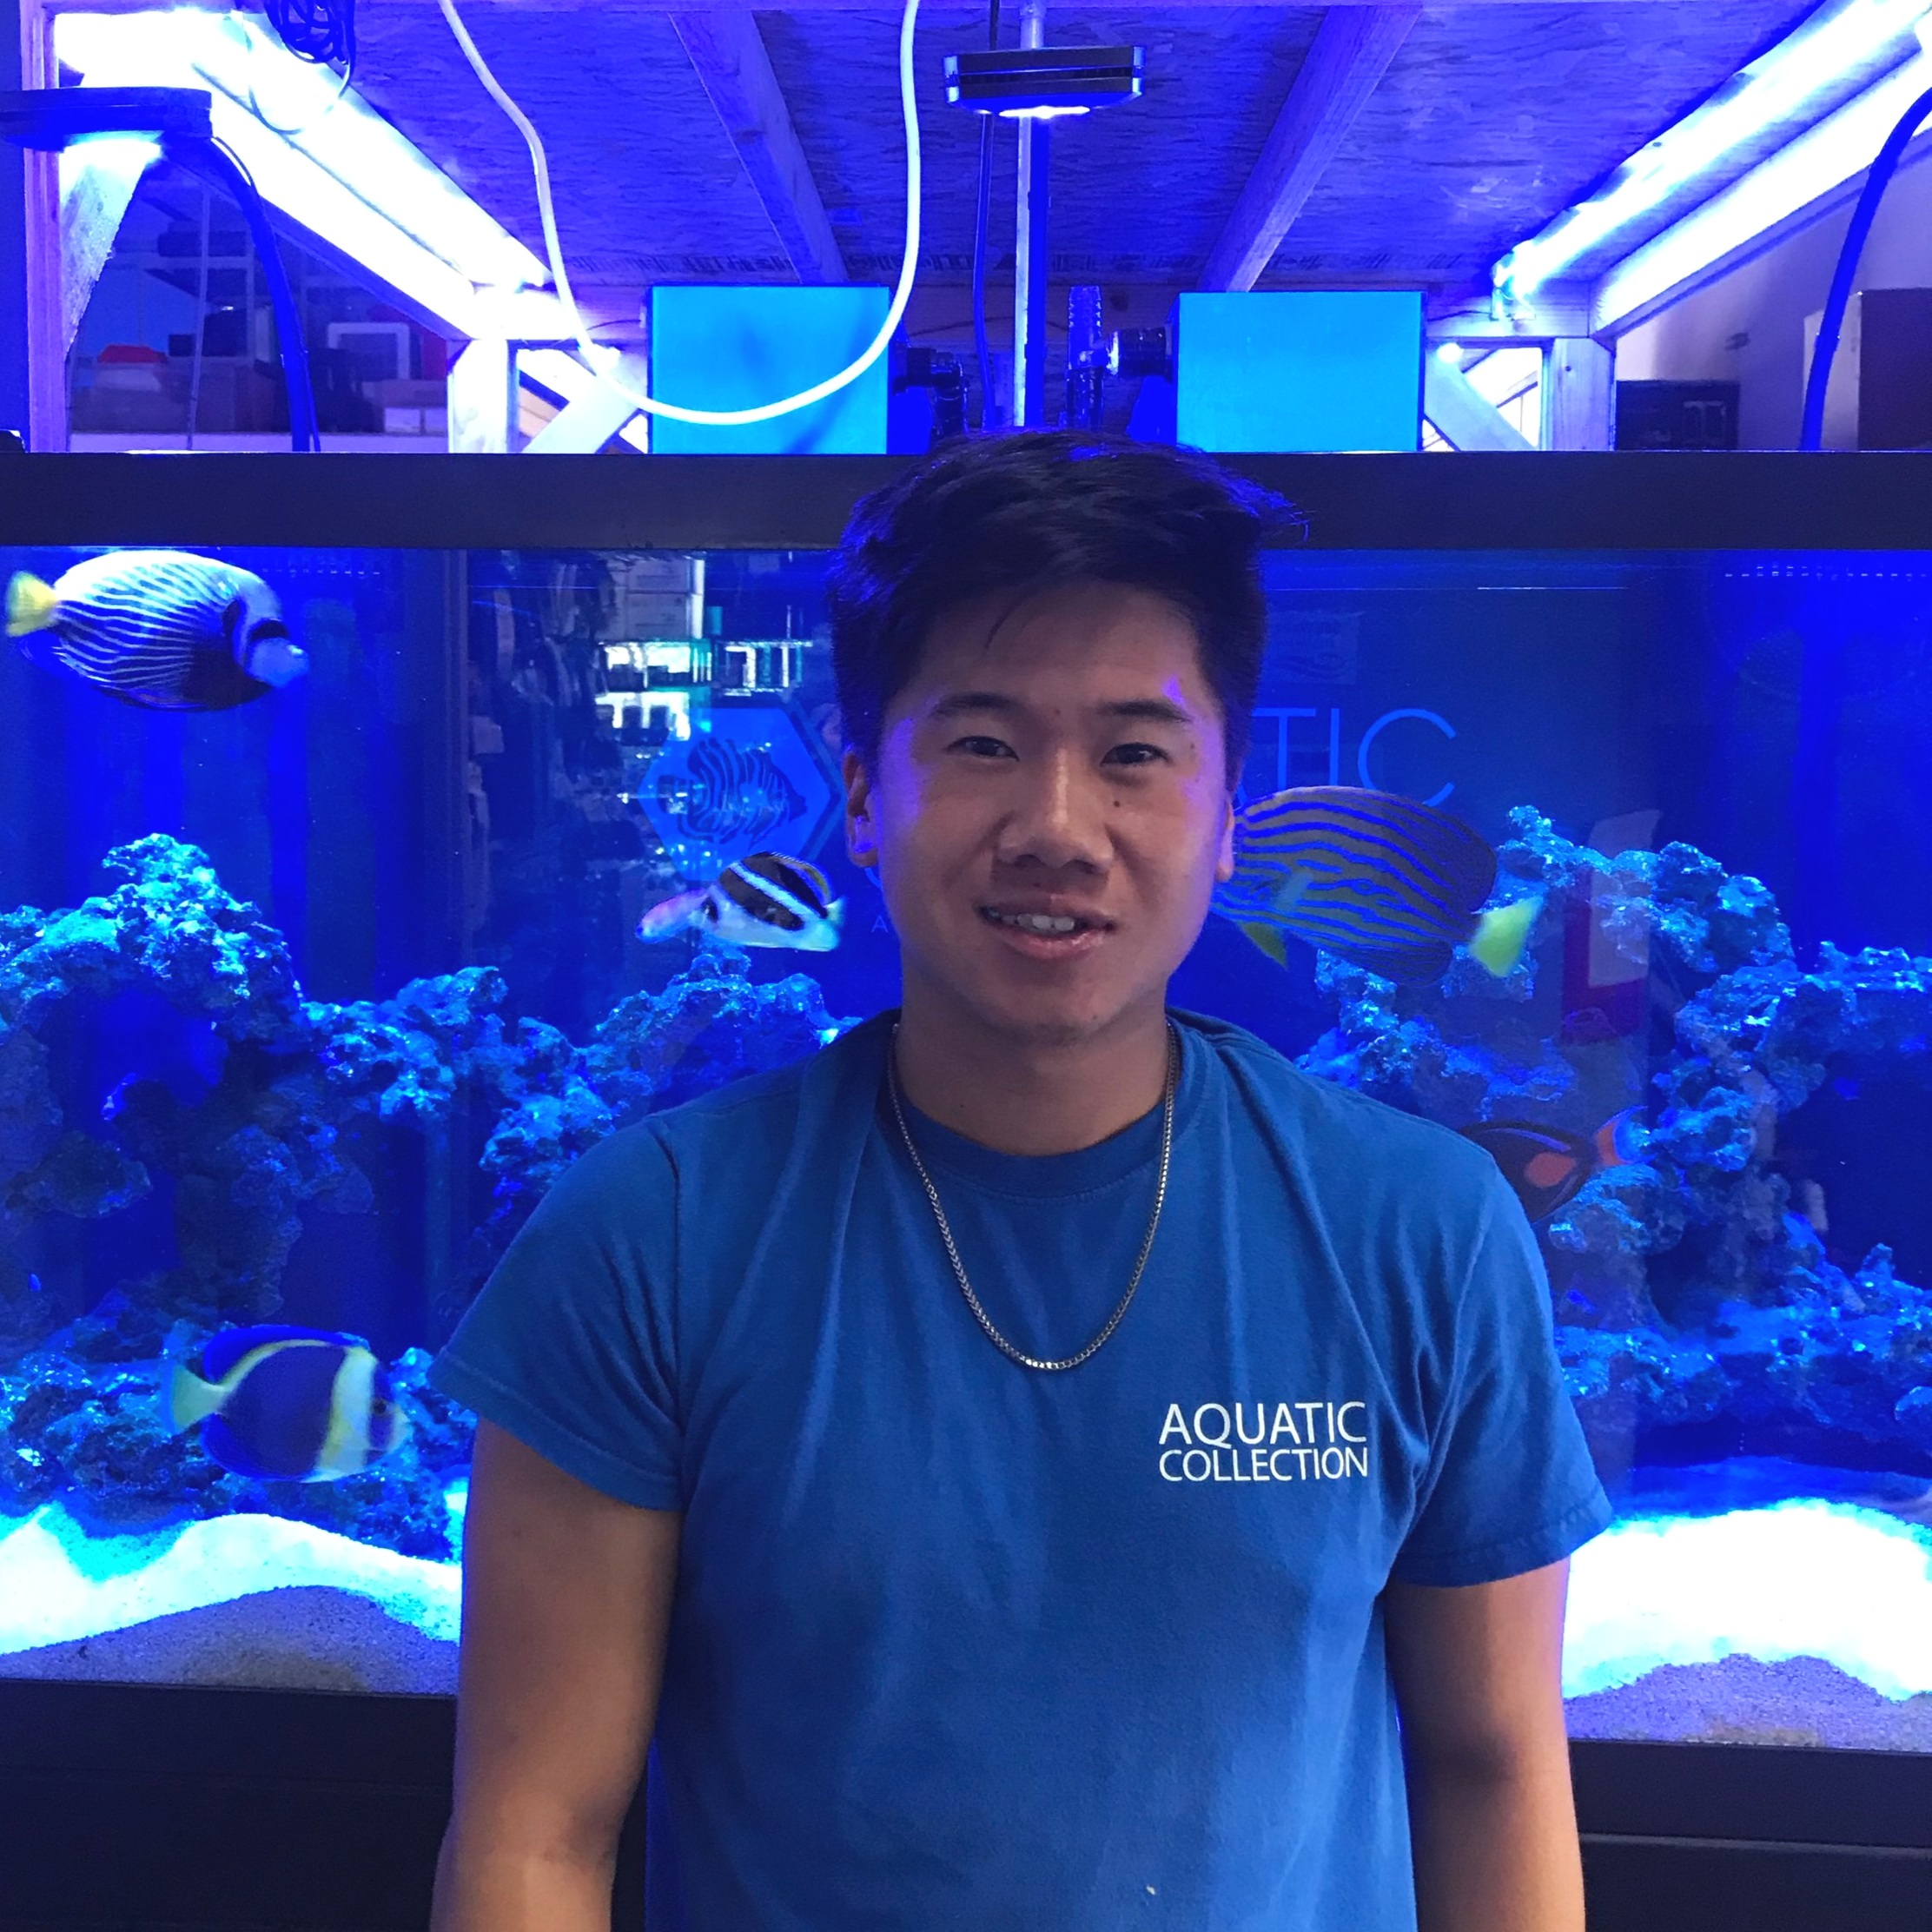 Justin - Justin has been volunteering at Aquatic Collection for about a year. He recently graduated from high school, enjoys playing basketball and volleyball, and he loves to work out. Justin just purchased his first aquarium and is enjoying learning about coral. His favorite fish is the Foxface and his favorite coral is the jawbreaker mushroom. He likes to watch the show Silicon Valley and his favorite movie is Lilo and Stitch. Say